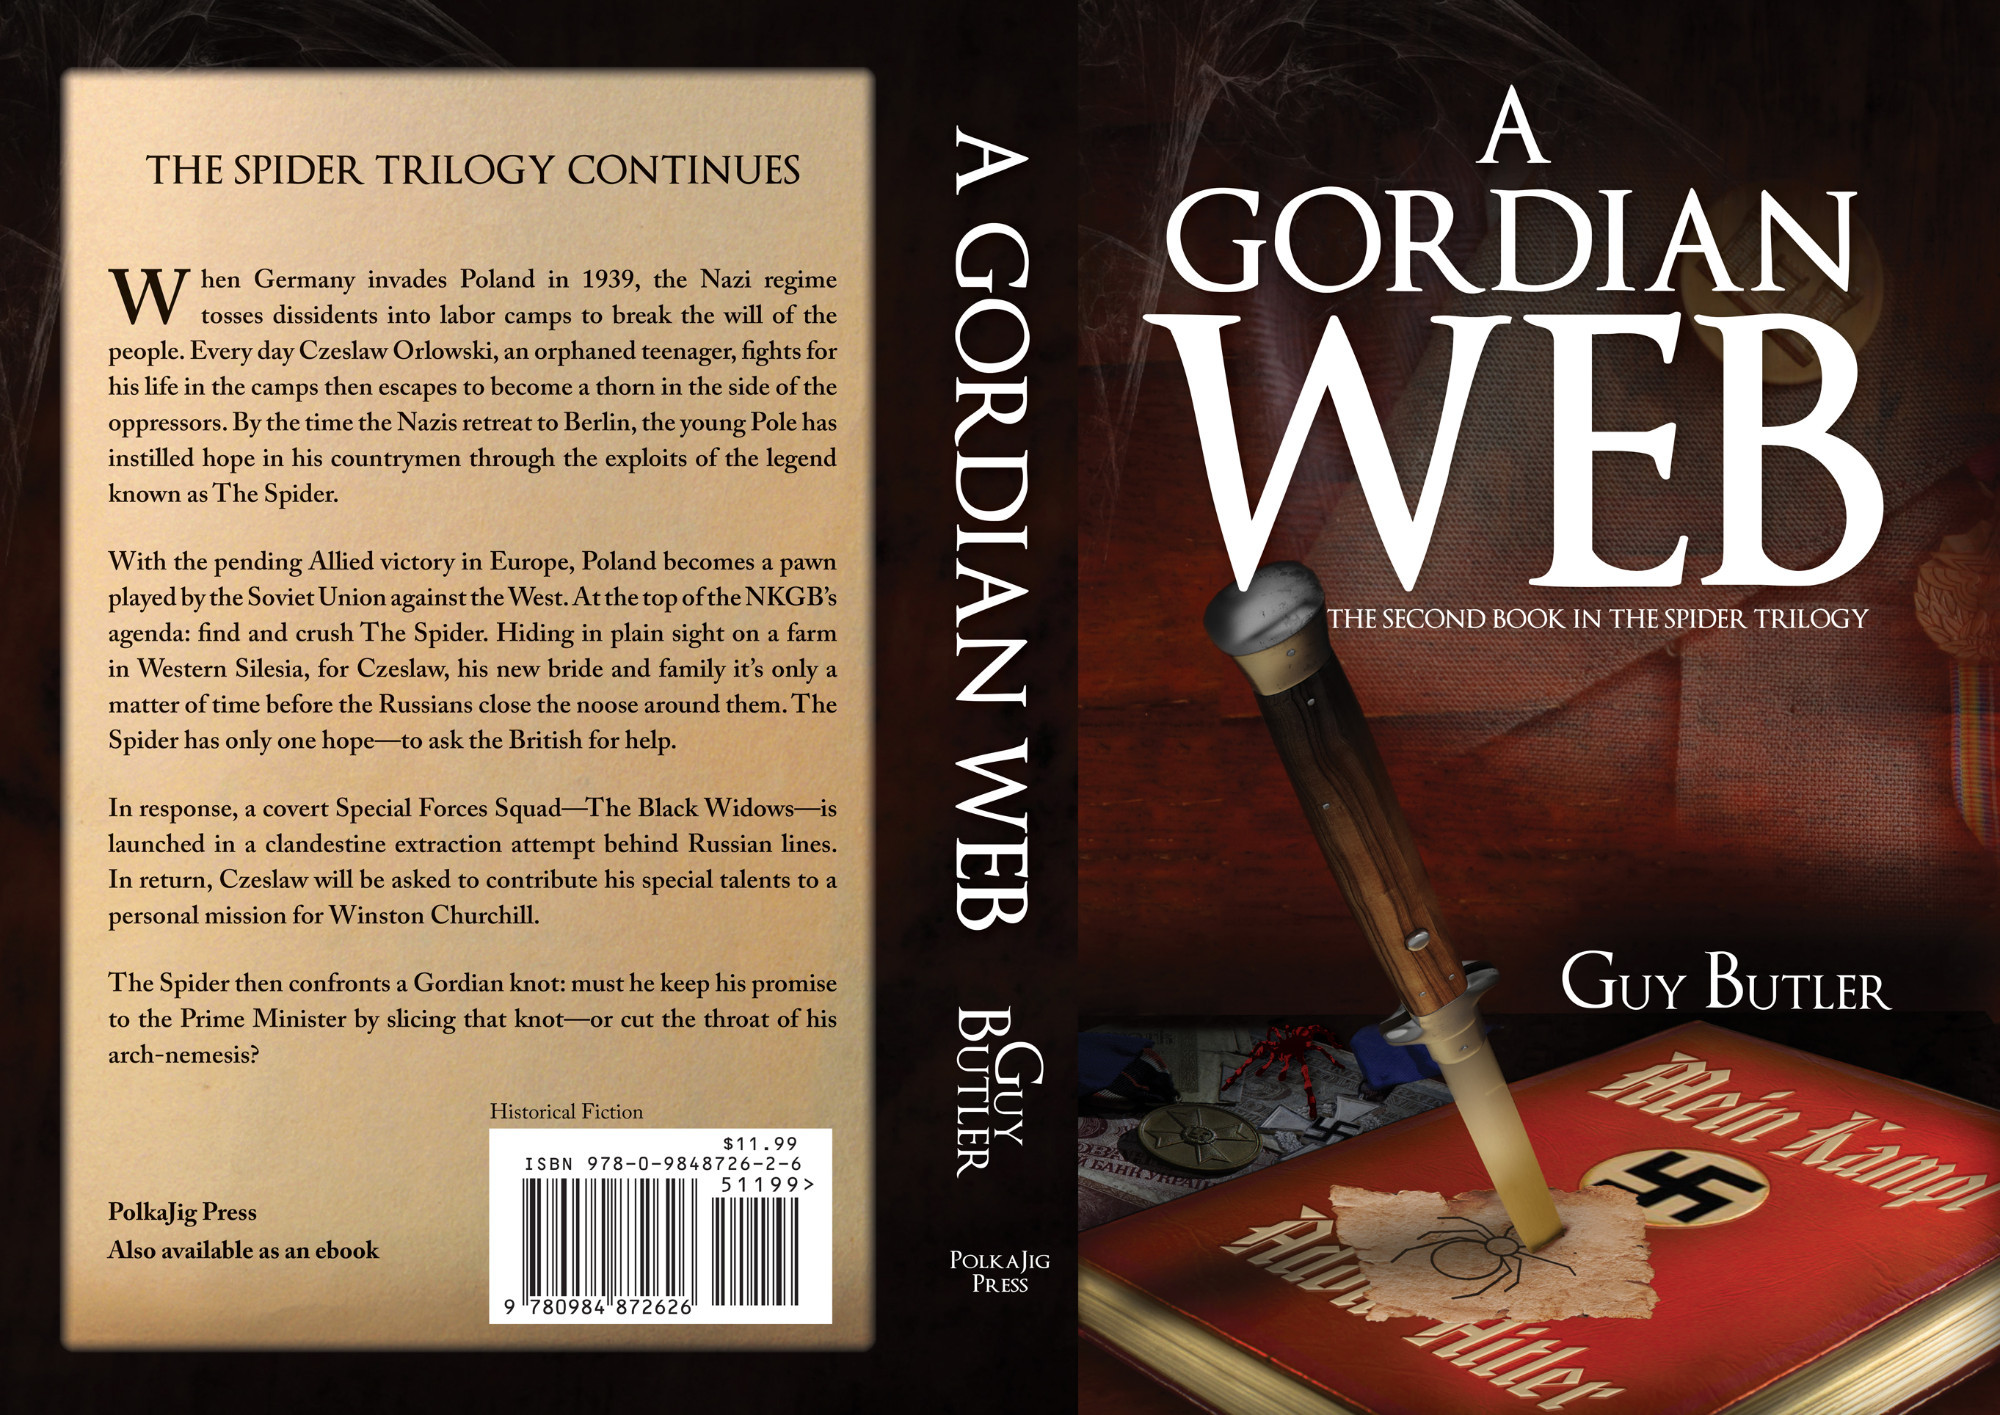 GordianWeb_CoverSpread_Final_111213_577-146.jpg